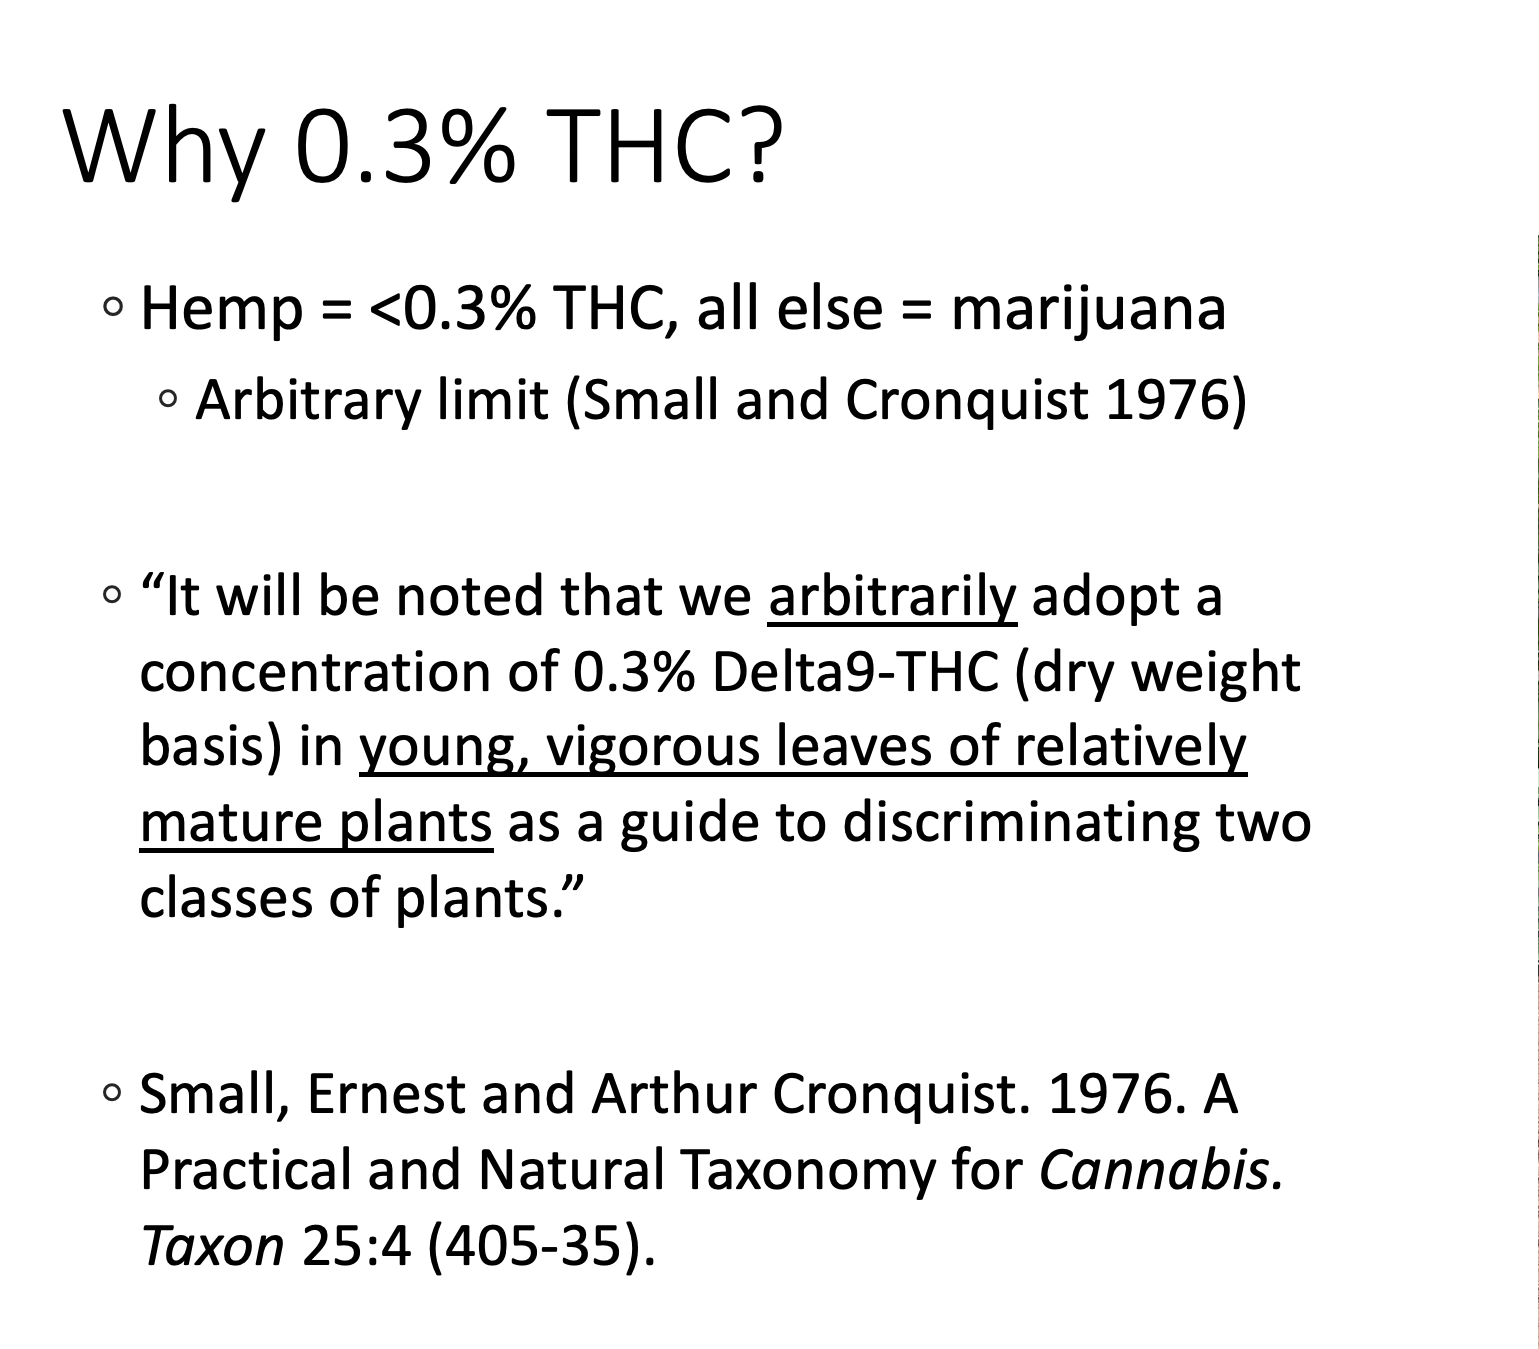 why is hemp .3% THC?